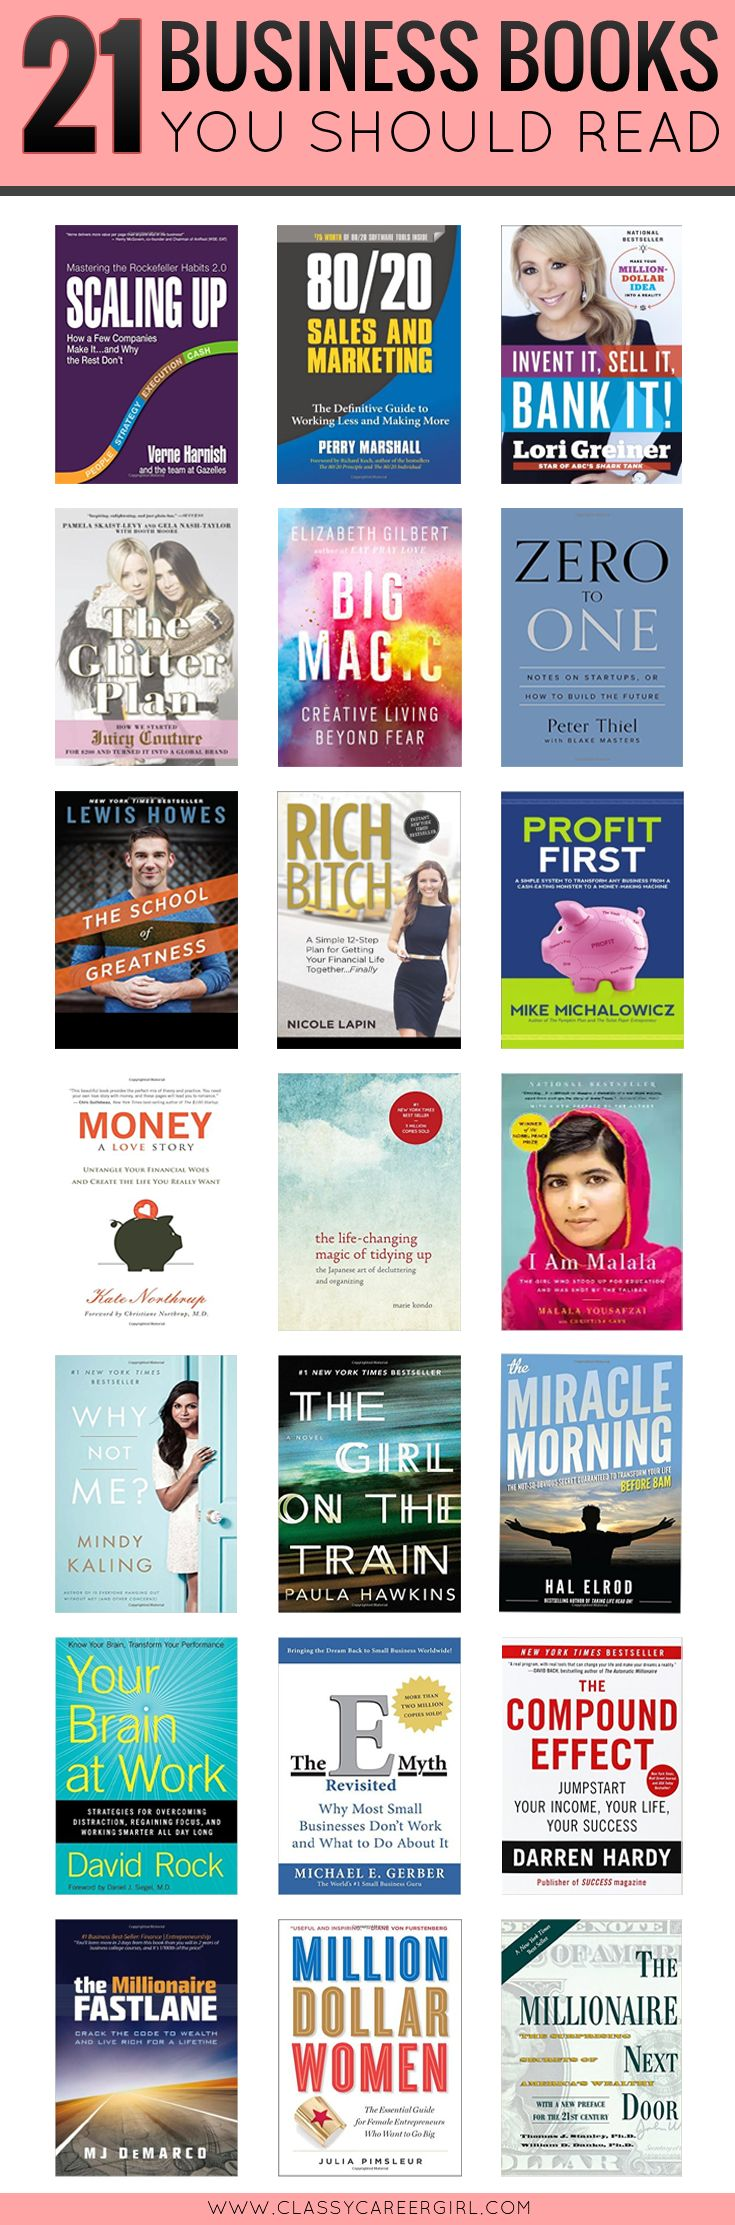 Stop whatever you are doing and save this pin! These are must reads.